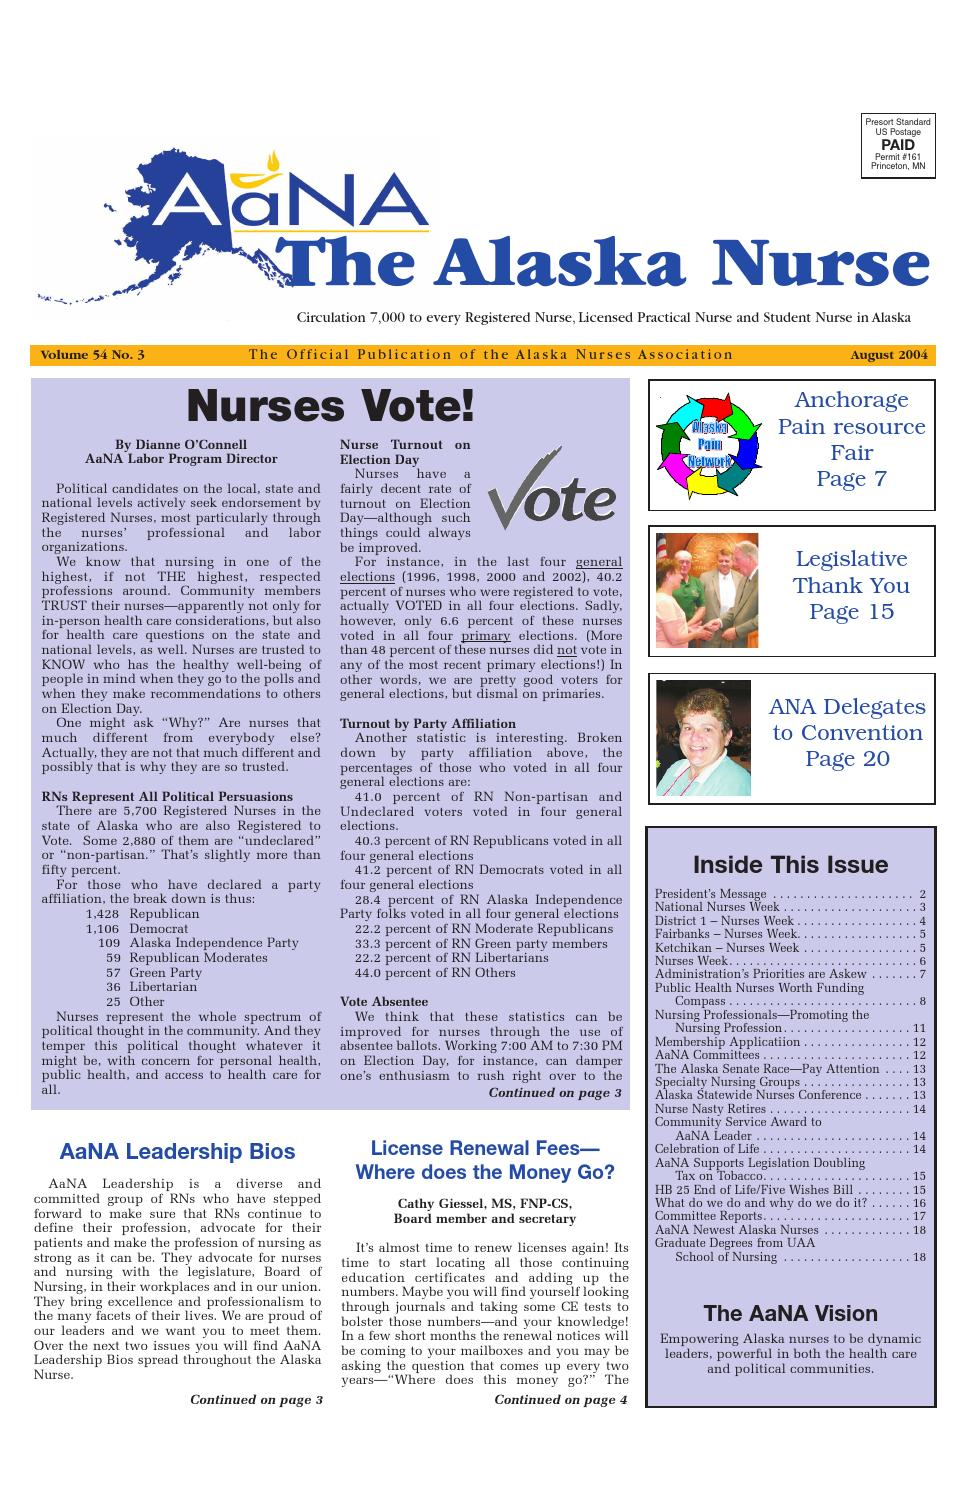 The Alaska Nurse - Vol. 54 No. 3 - August 2004 by Alaska Nurses ...